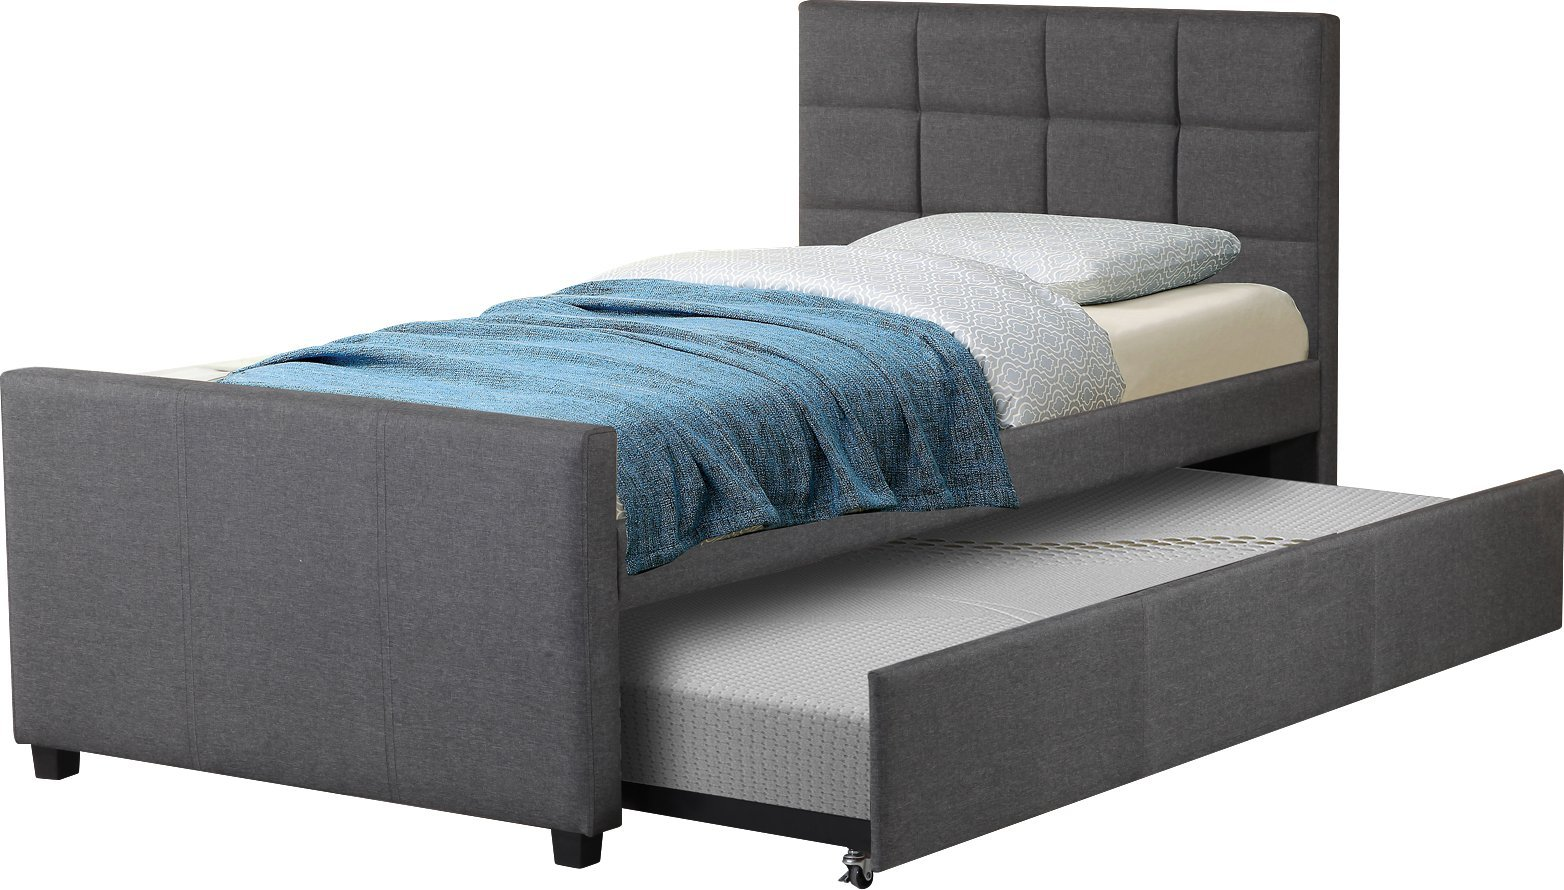 Best Quality Furniture K20 Upholstered Twin Bed, by Best Quality